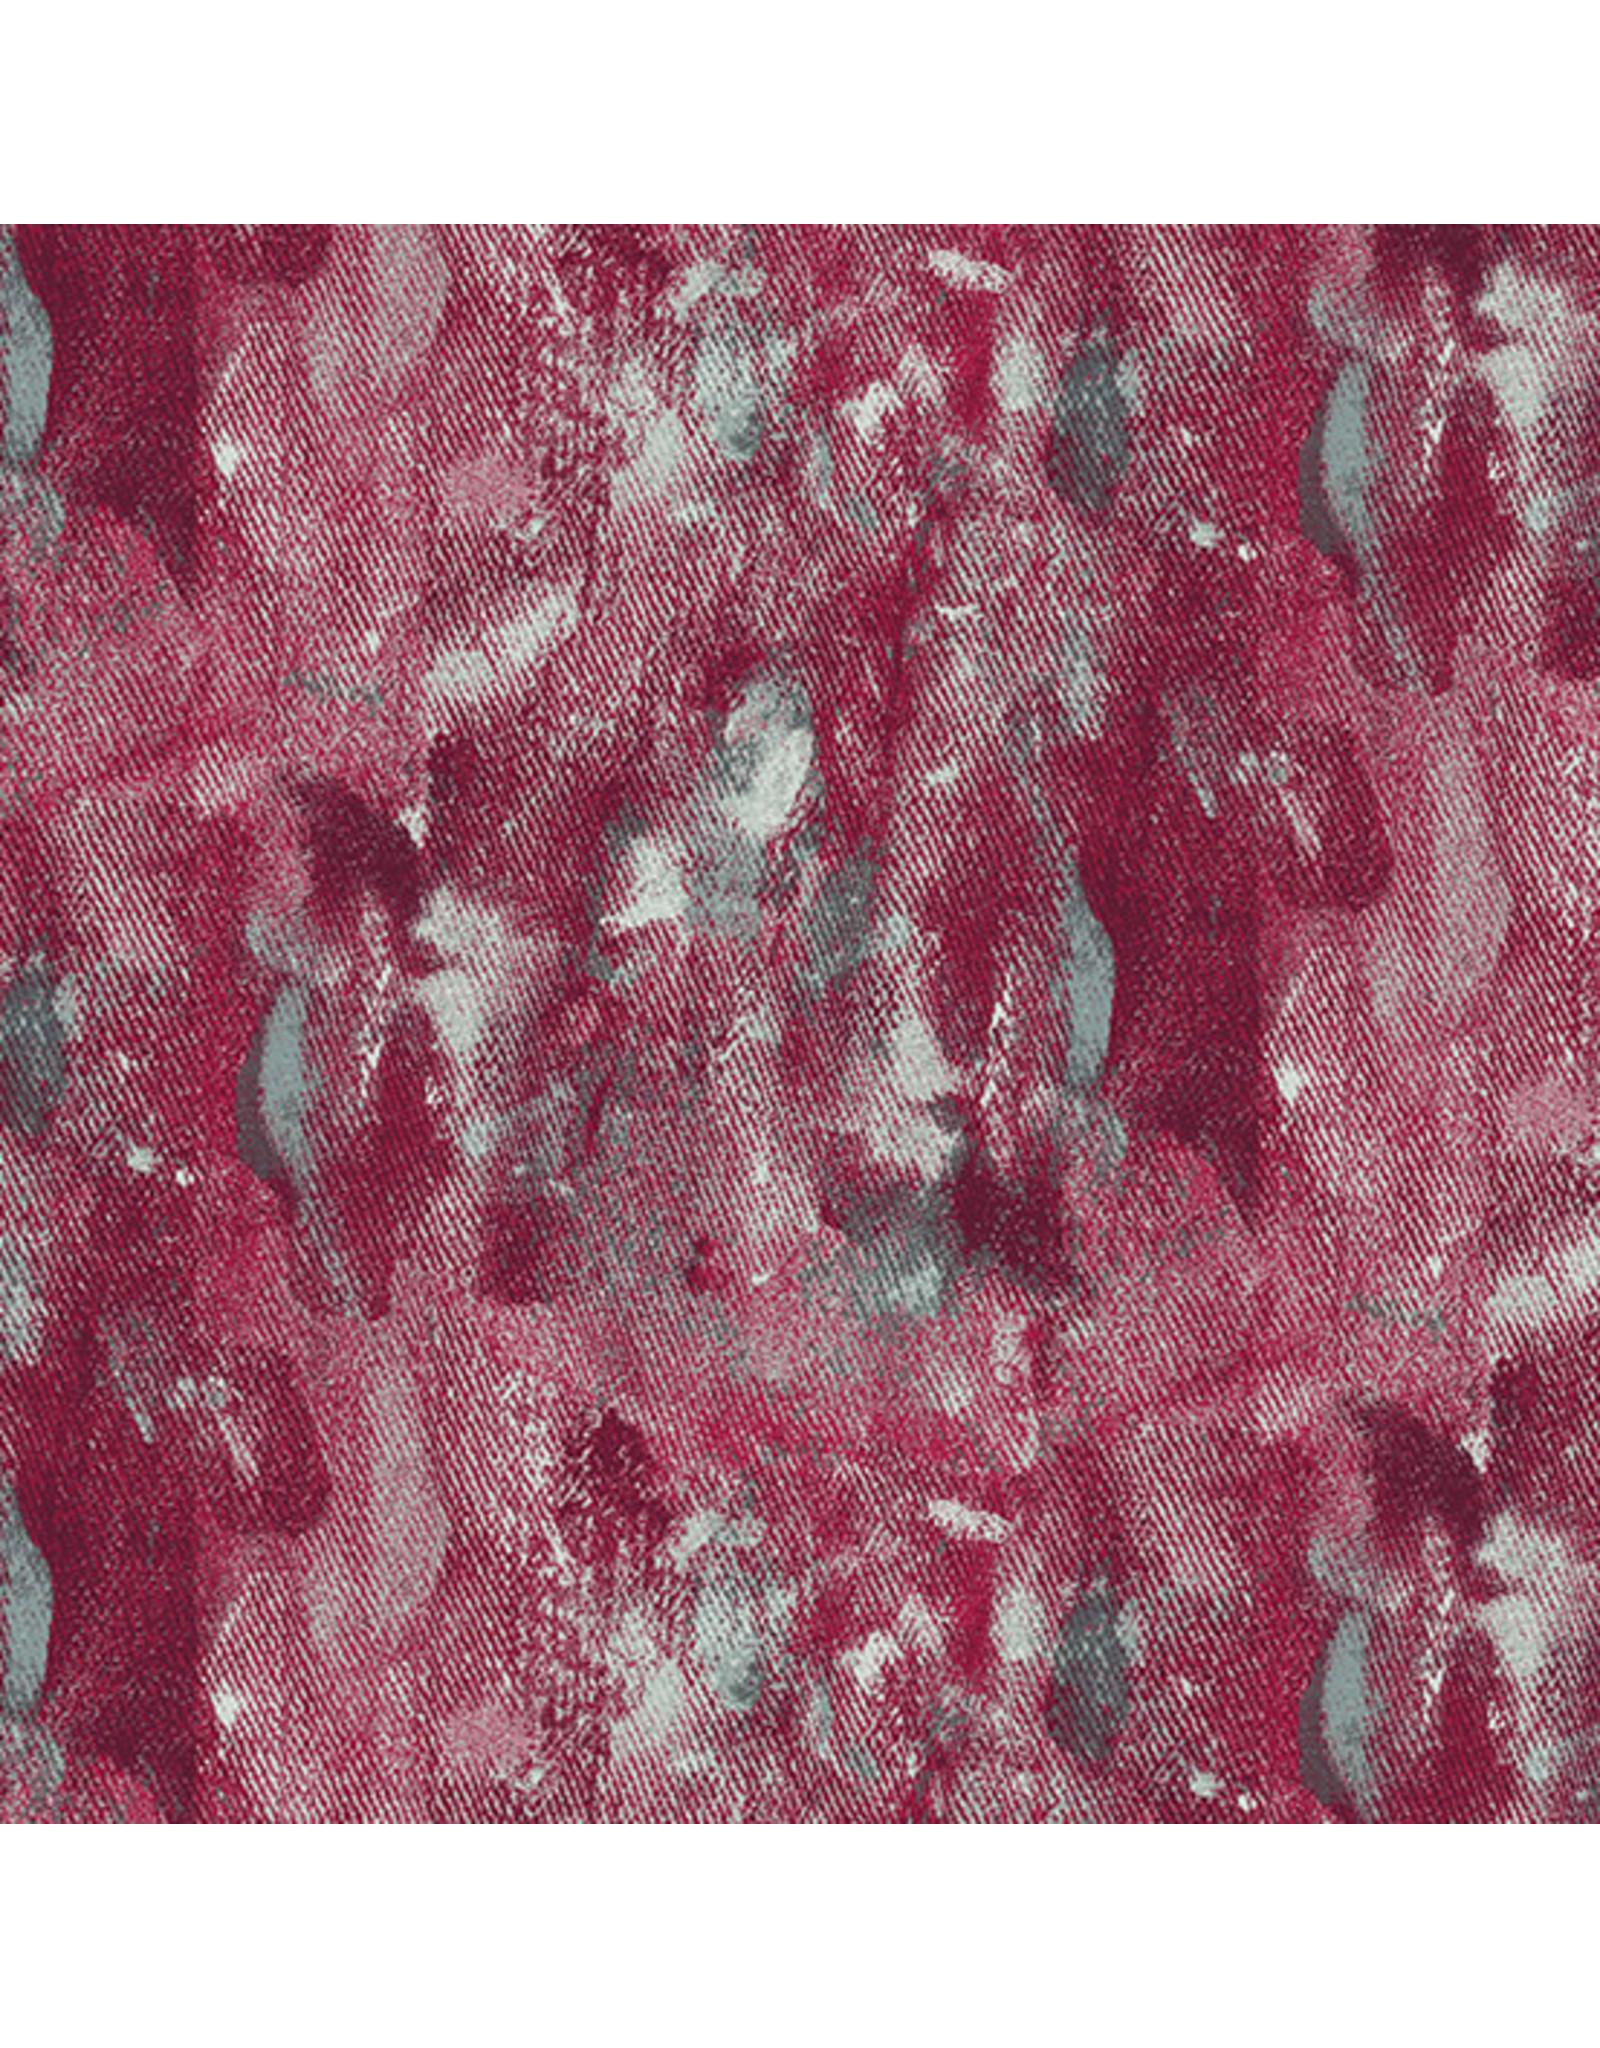 Andover Prism - Drop Cloth Ruby